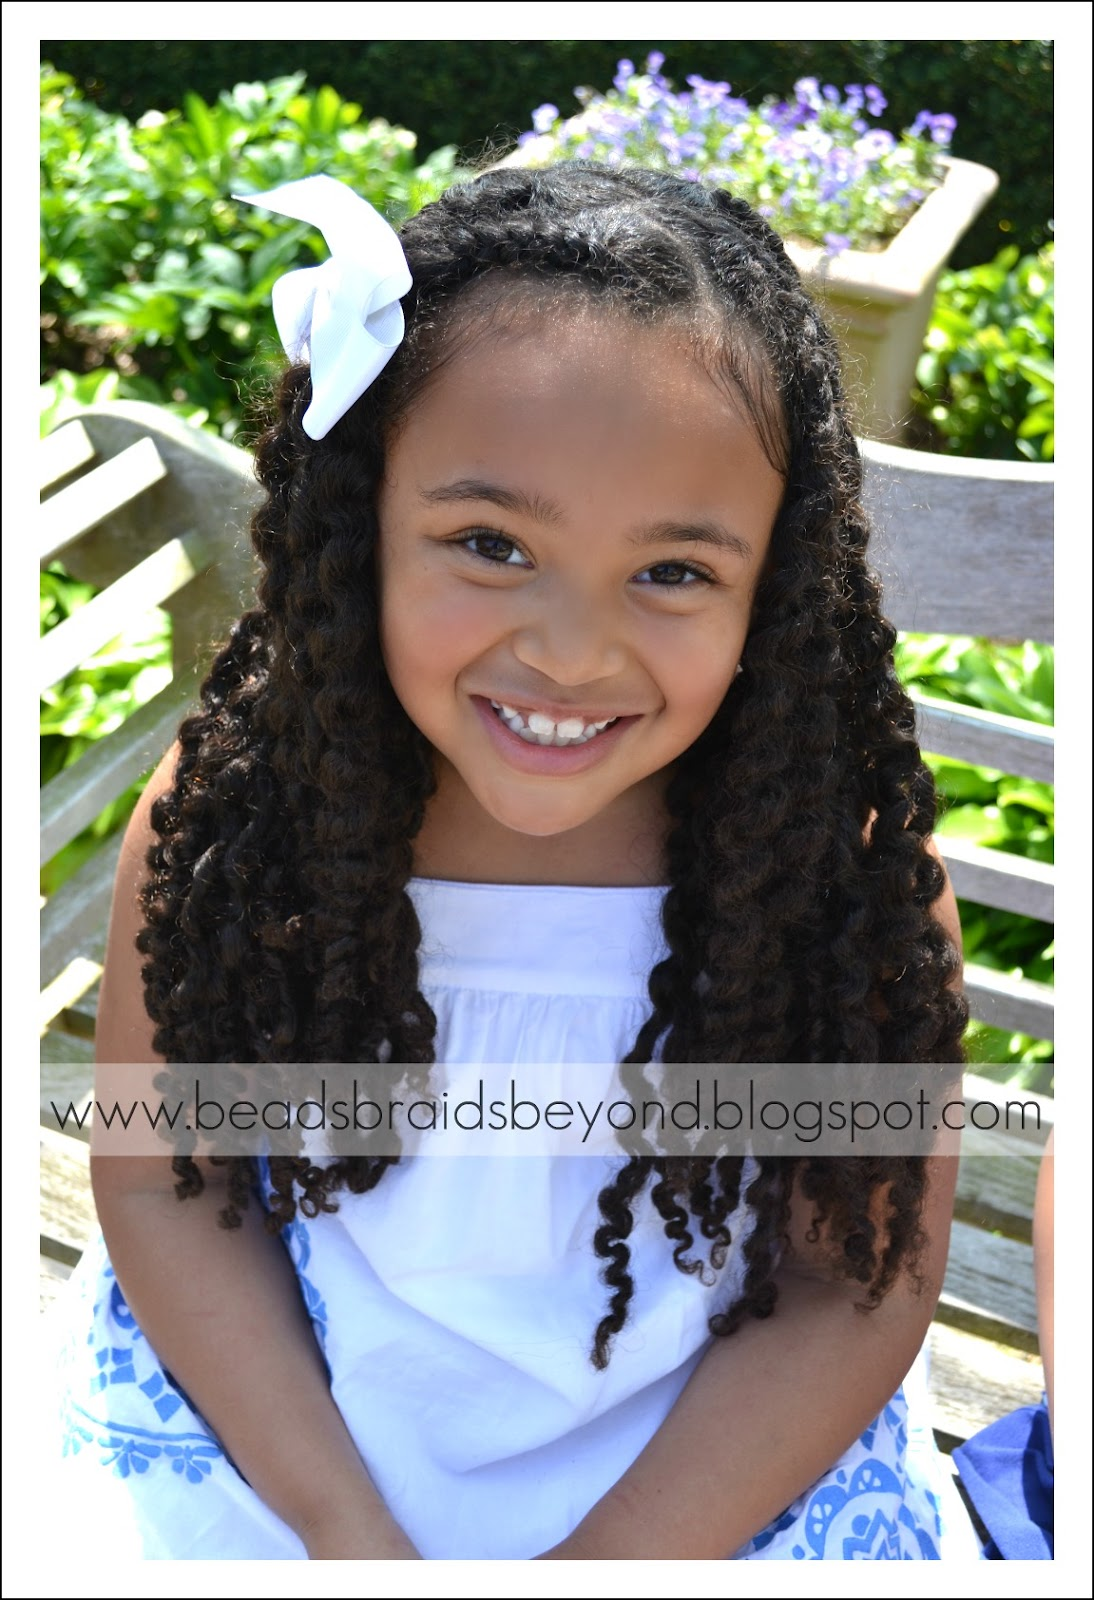 Swell Beads Braids And Beyond Little Girls Natural Hairstyles Twist Hairstyles For Men Maxibearus